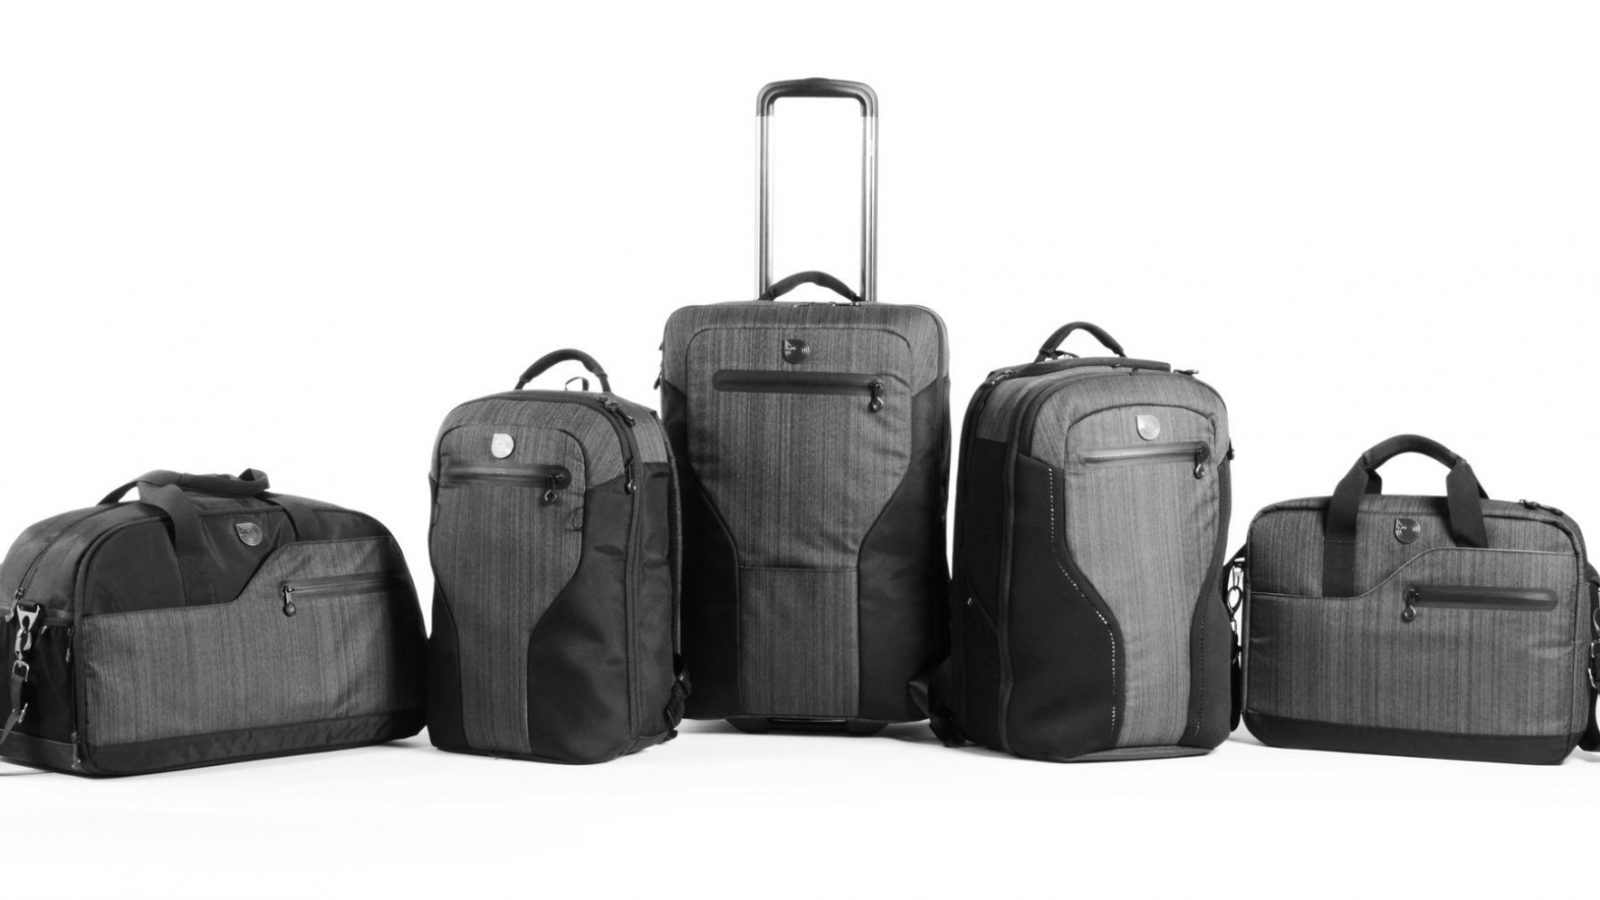 Which bag fits your needs?